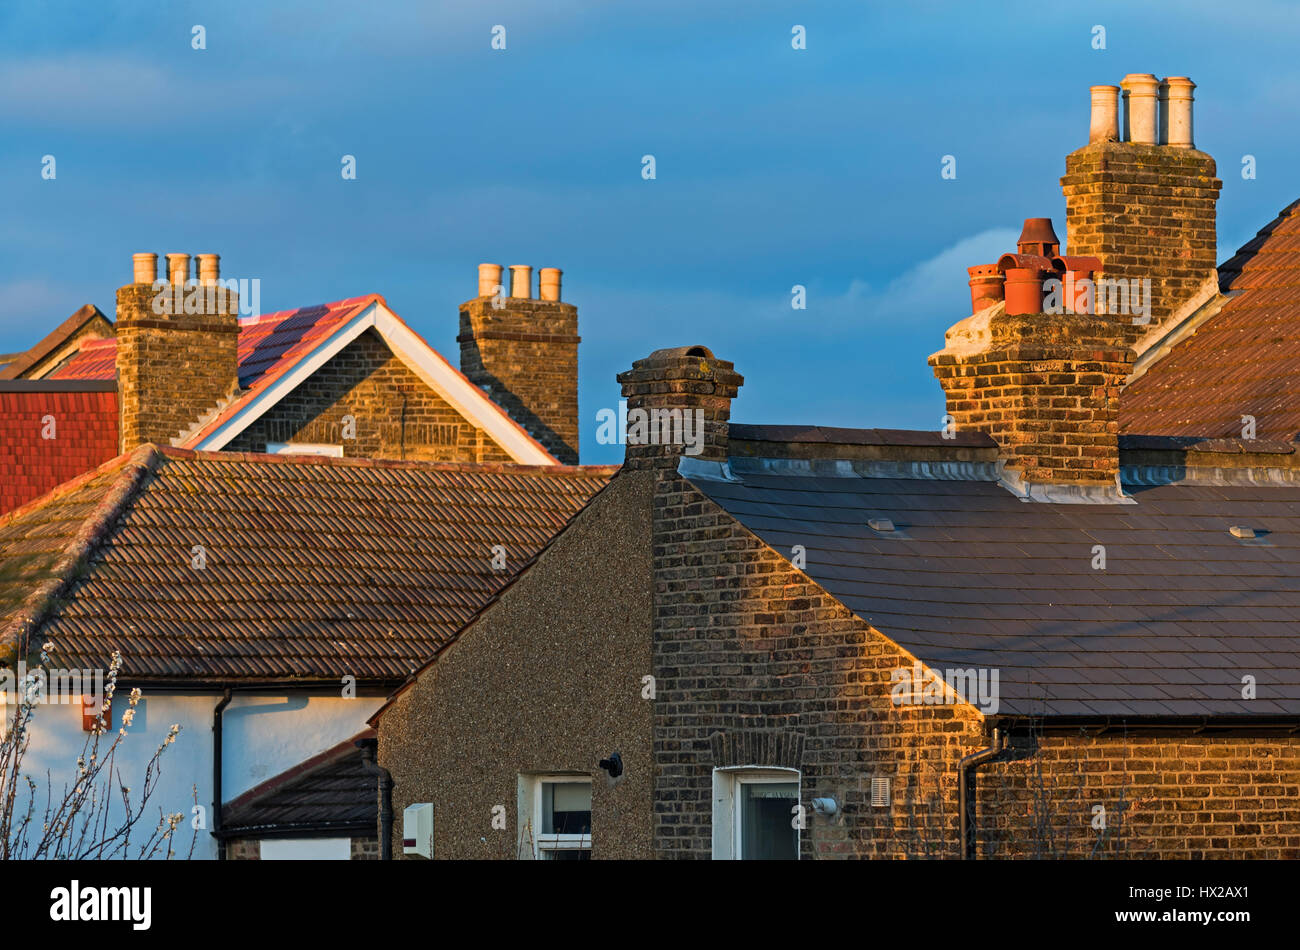 Rooftops and chimneys. Evening light. Croydon South London UK - Stock Image